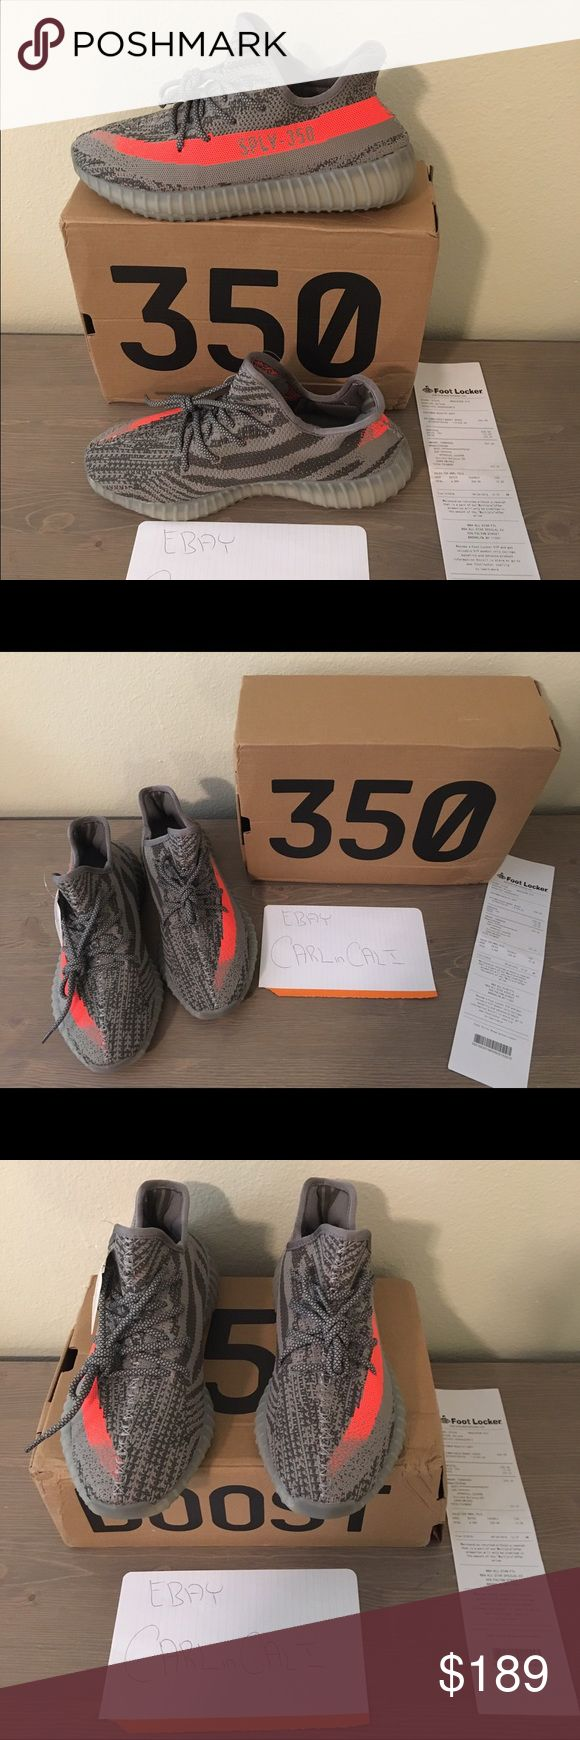 New Yeezy Boost 350 V2 Beluga - w/ Box & Receipt New Yeezy 350 V2 Beluga w/ Box & Receipt. We have both Men's & Women's sizes in limited quantities. Womens Sizes: 5, 6, 6.5 & 7.5 - Mens Sizes: 7, 8, 8.5, 9.5, 10, 11.5, 12.5 - We also have Oxford Tans, Moonrocks, Pirate Blacks & Turtle Doves For Sale. Contact us if interested. Thank you. Yeezy Shoes Sneakers